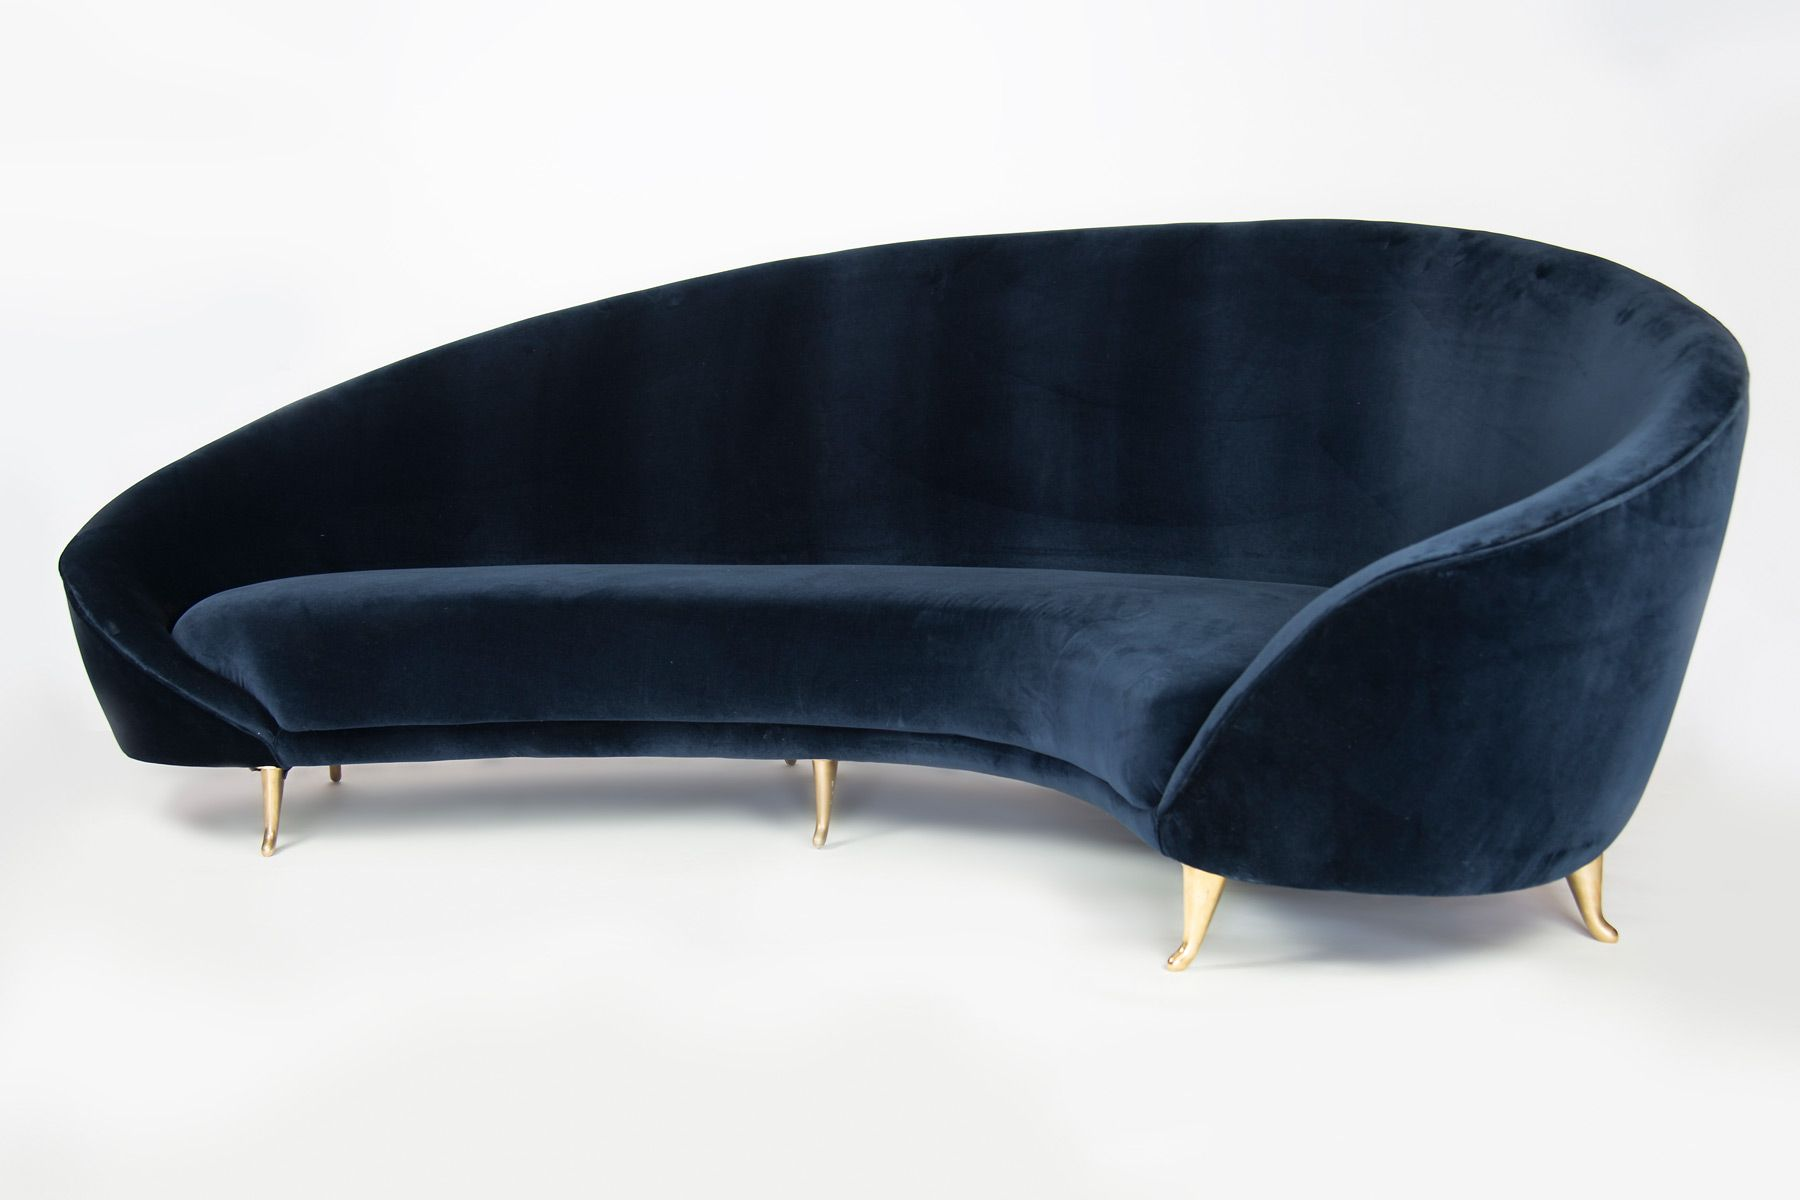 Curved Sofa On Pinterest Milo Baughman Modern Sofa And Round Sofa